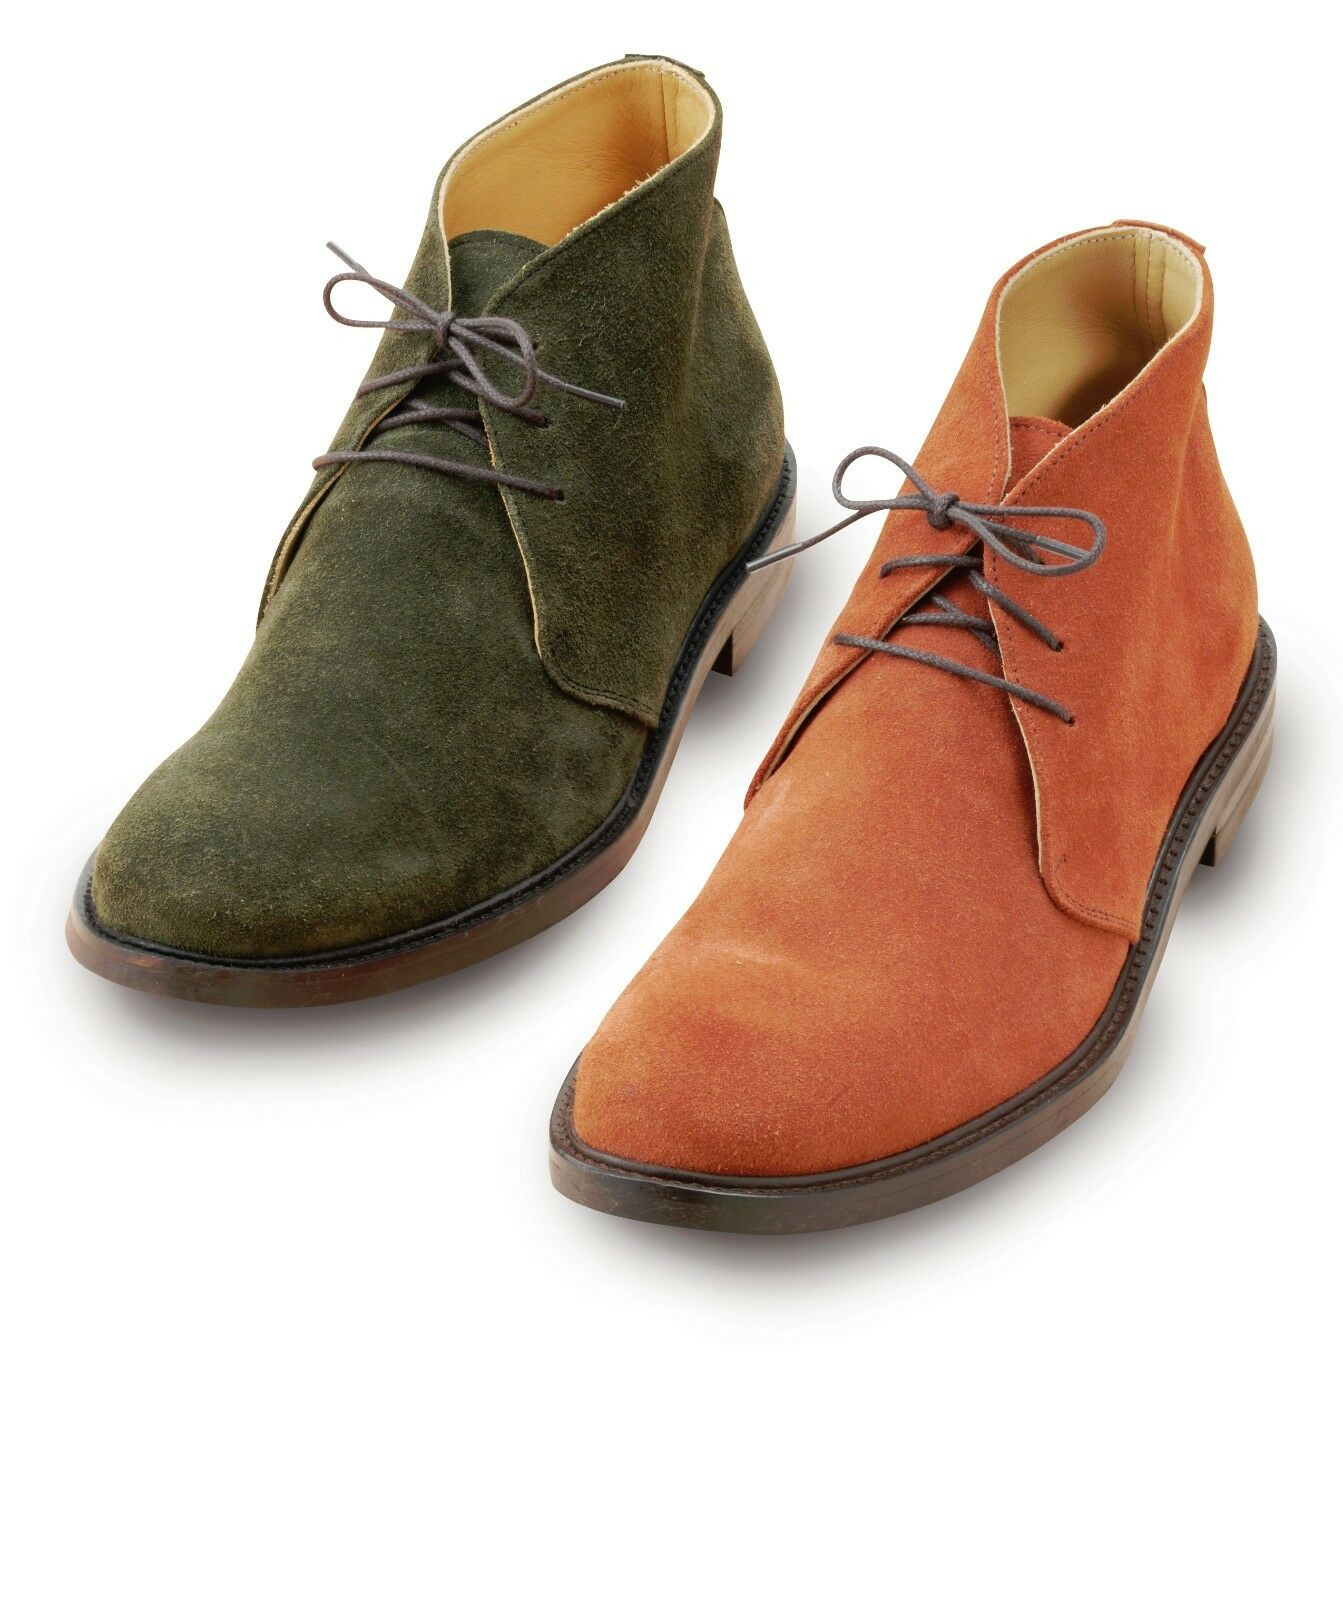 Laksen Suede Traditional Desert Boots